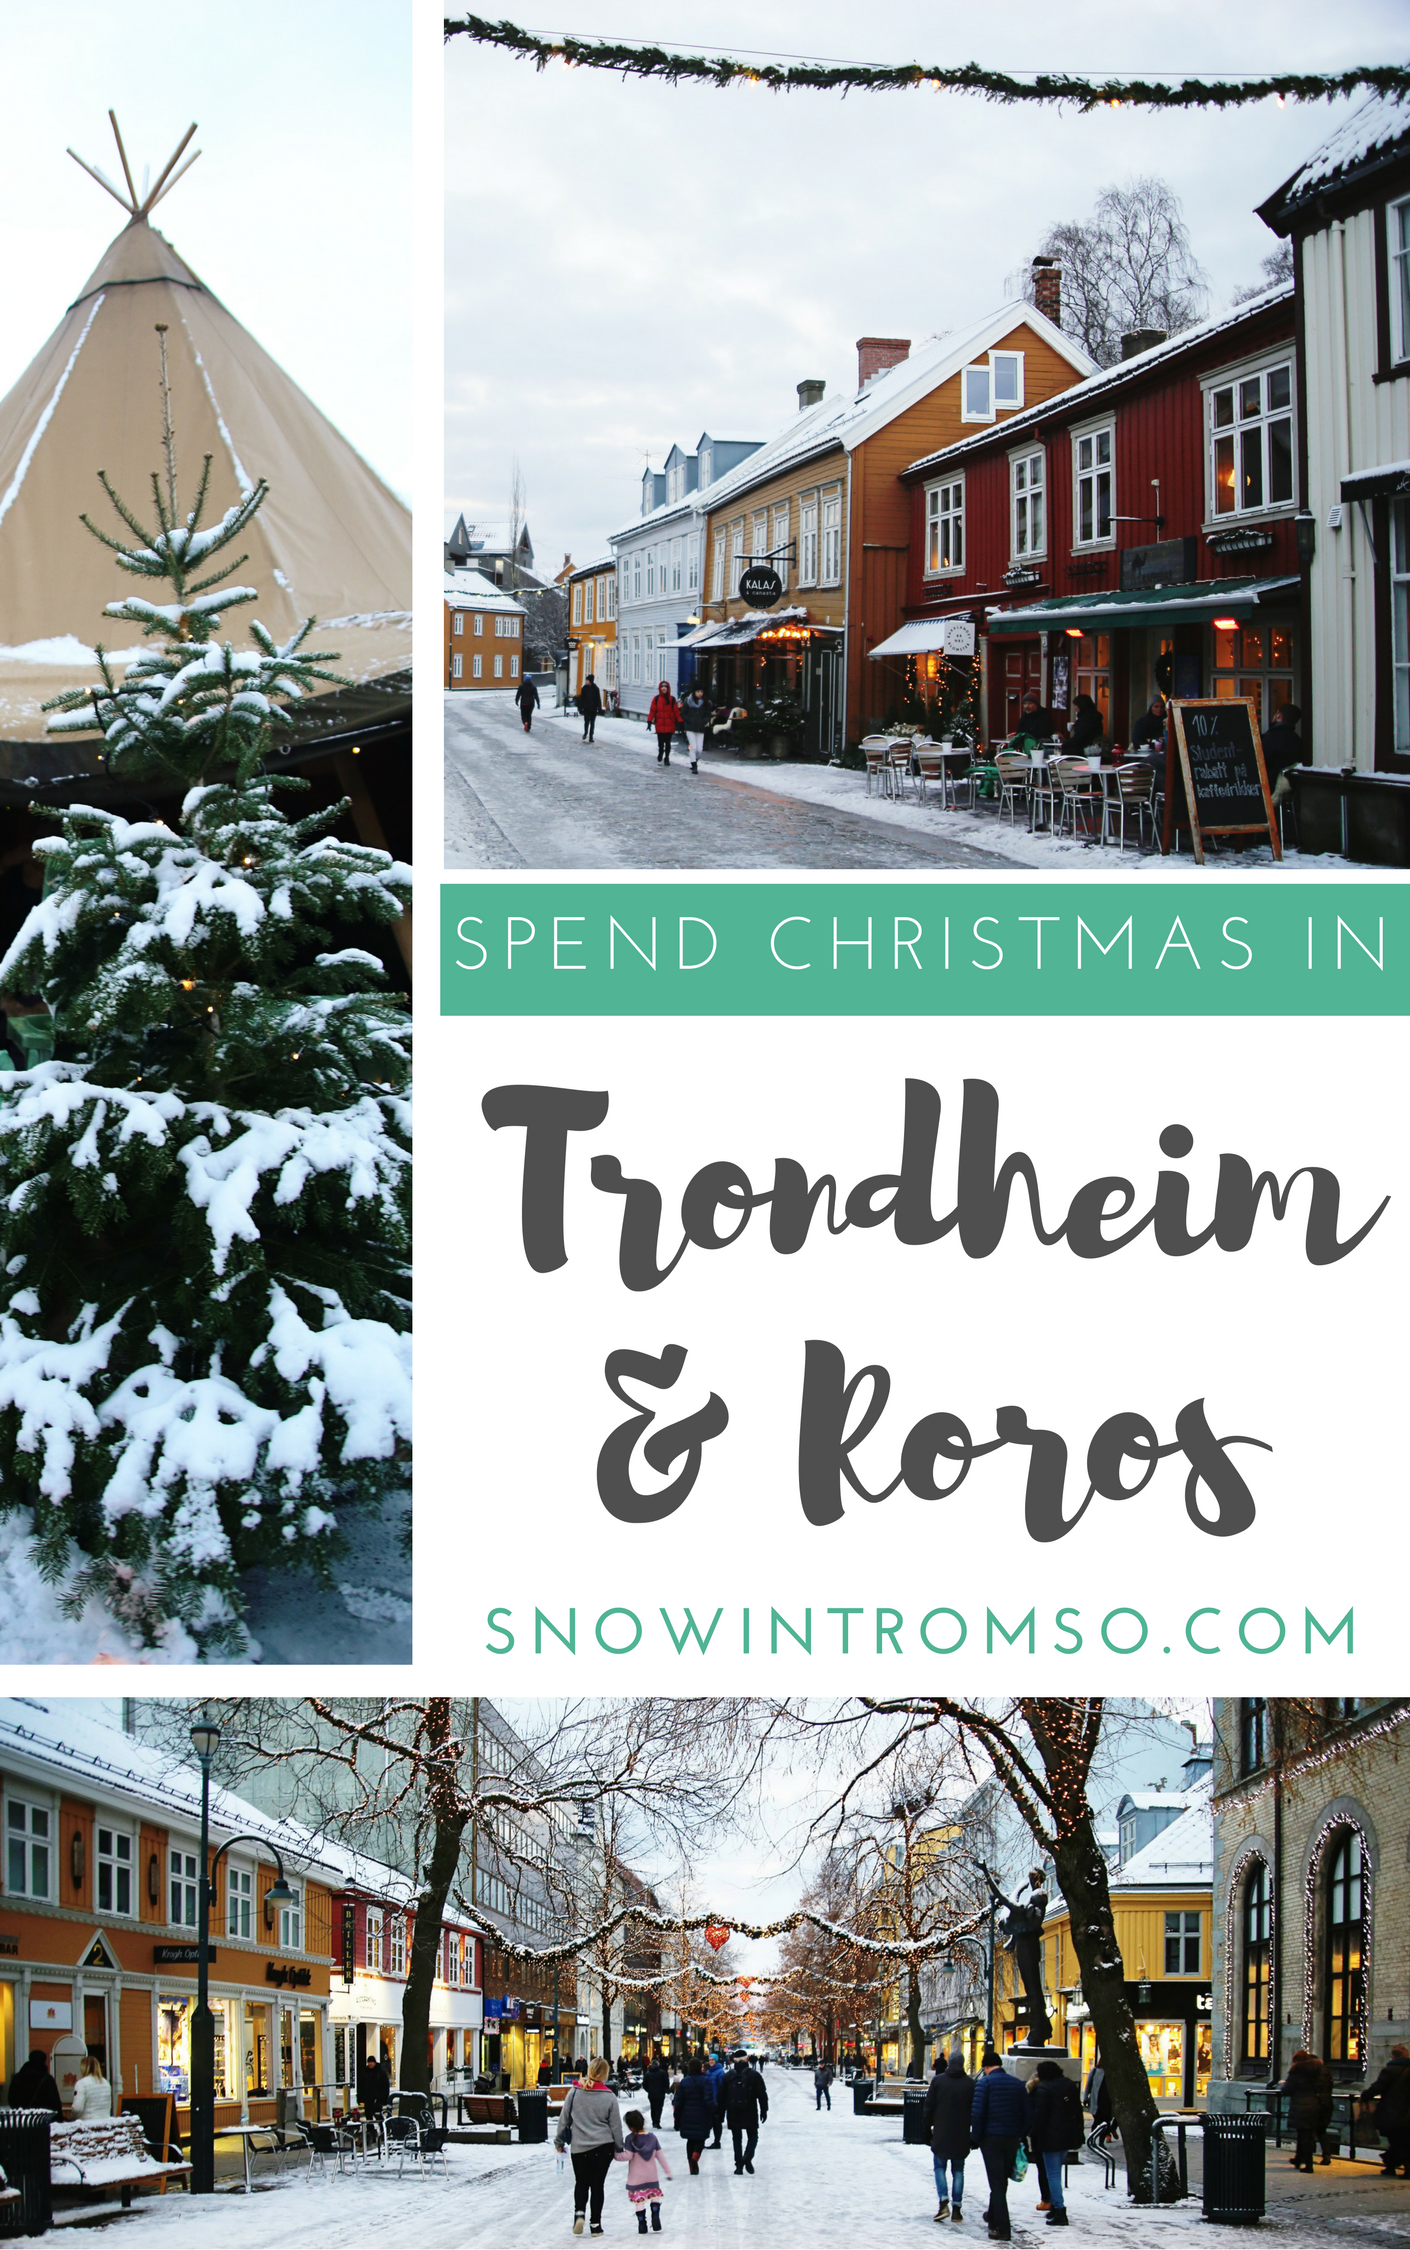 All you need to know about visiting Trondheim and Røros at Christmas time